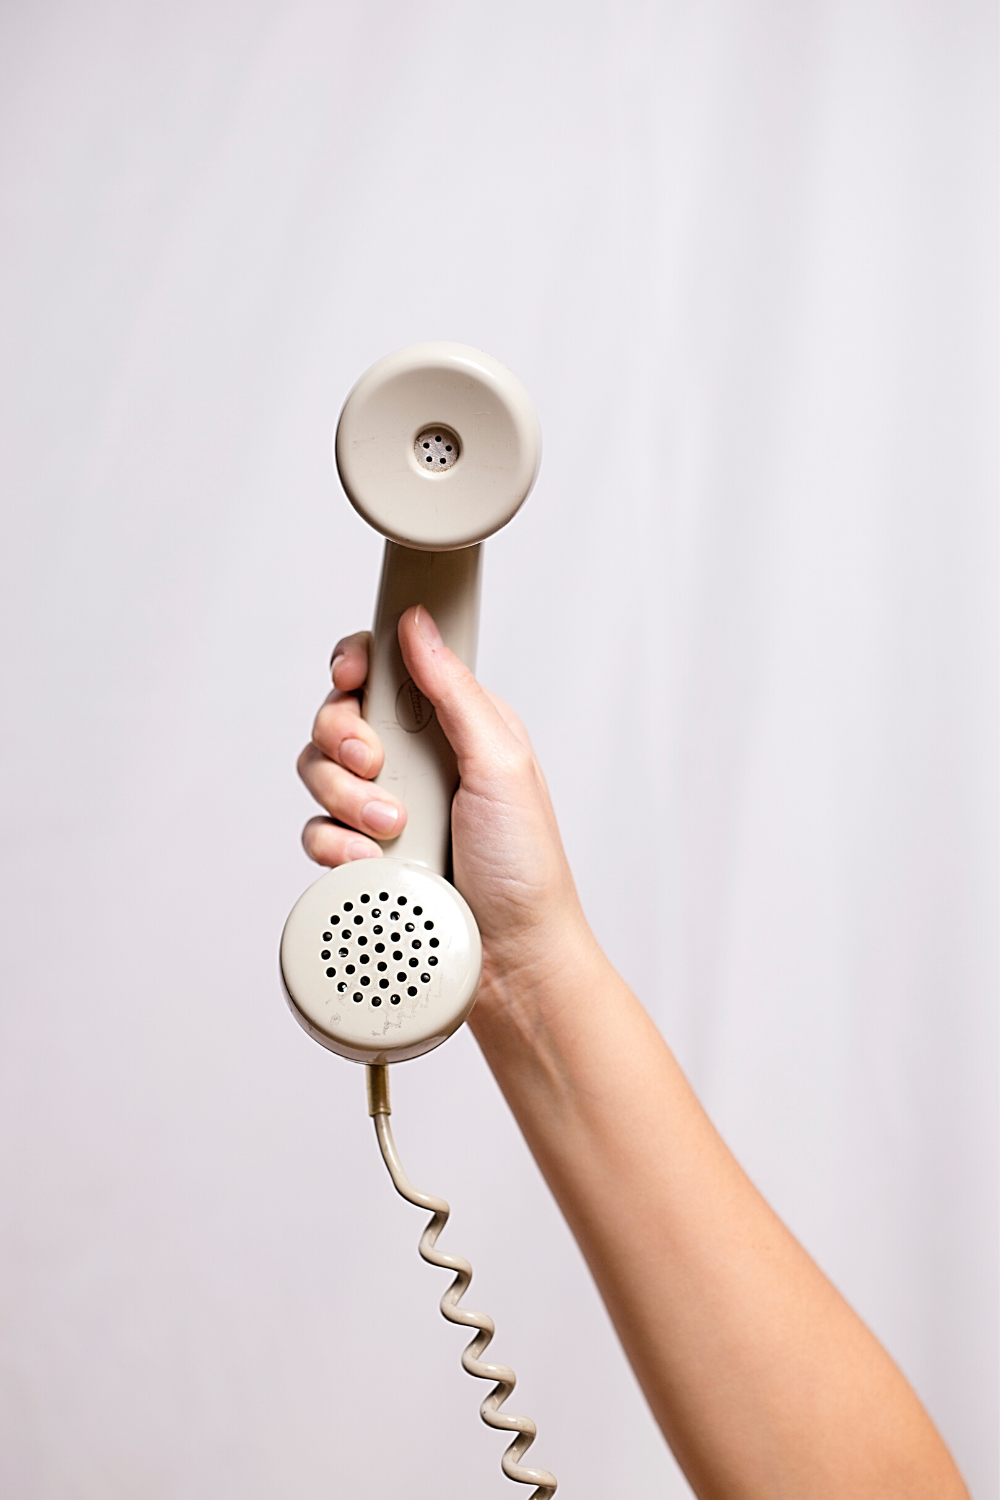 How to deal with nuisance cold callers